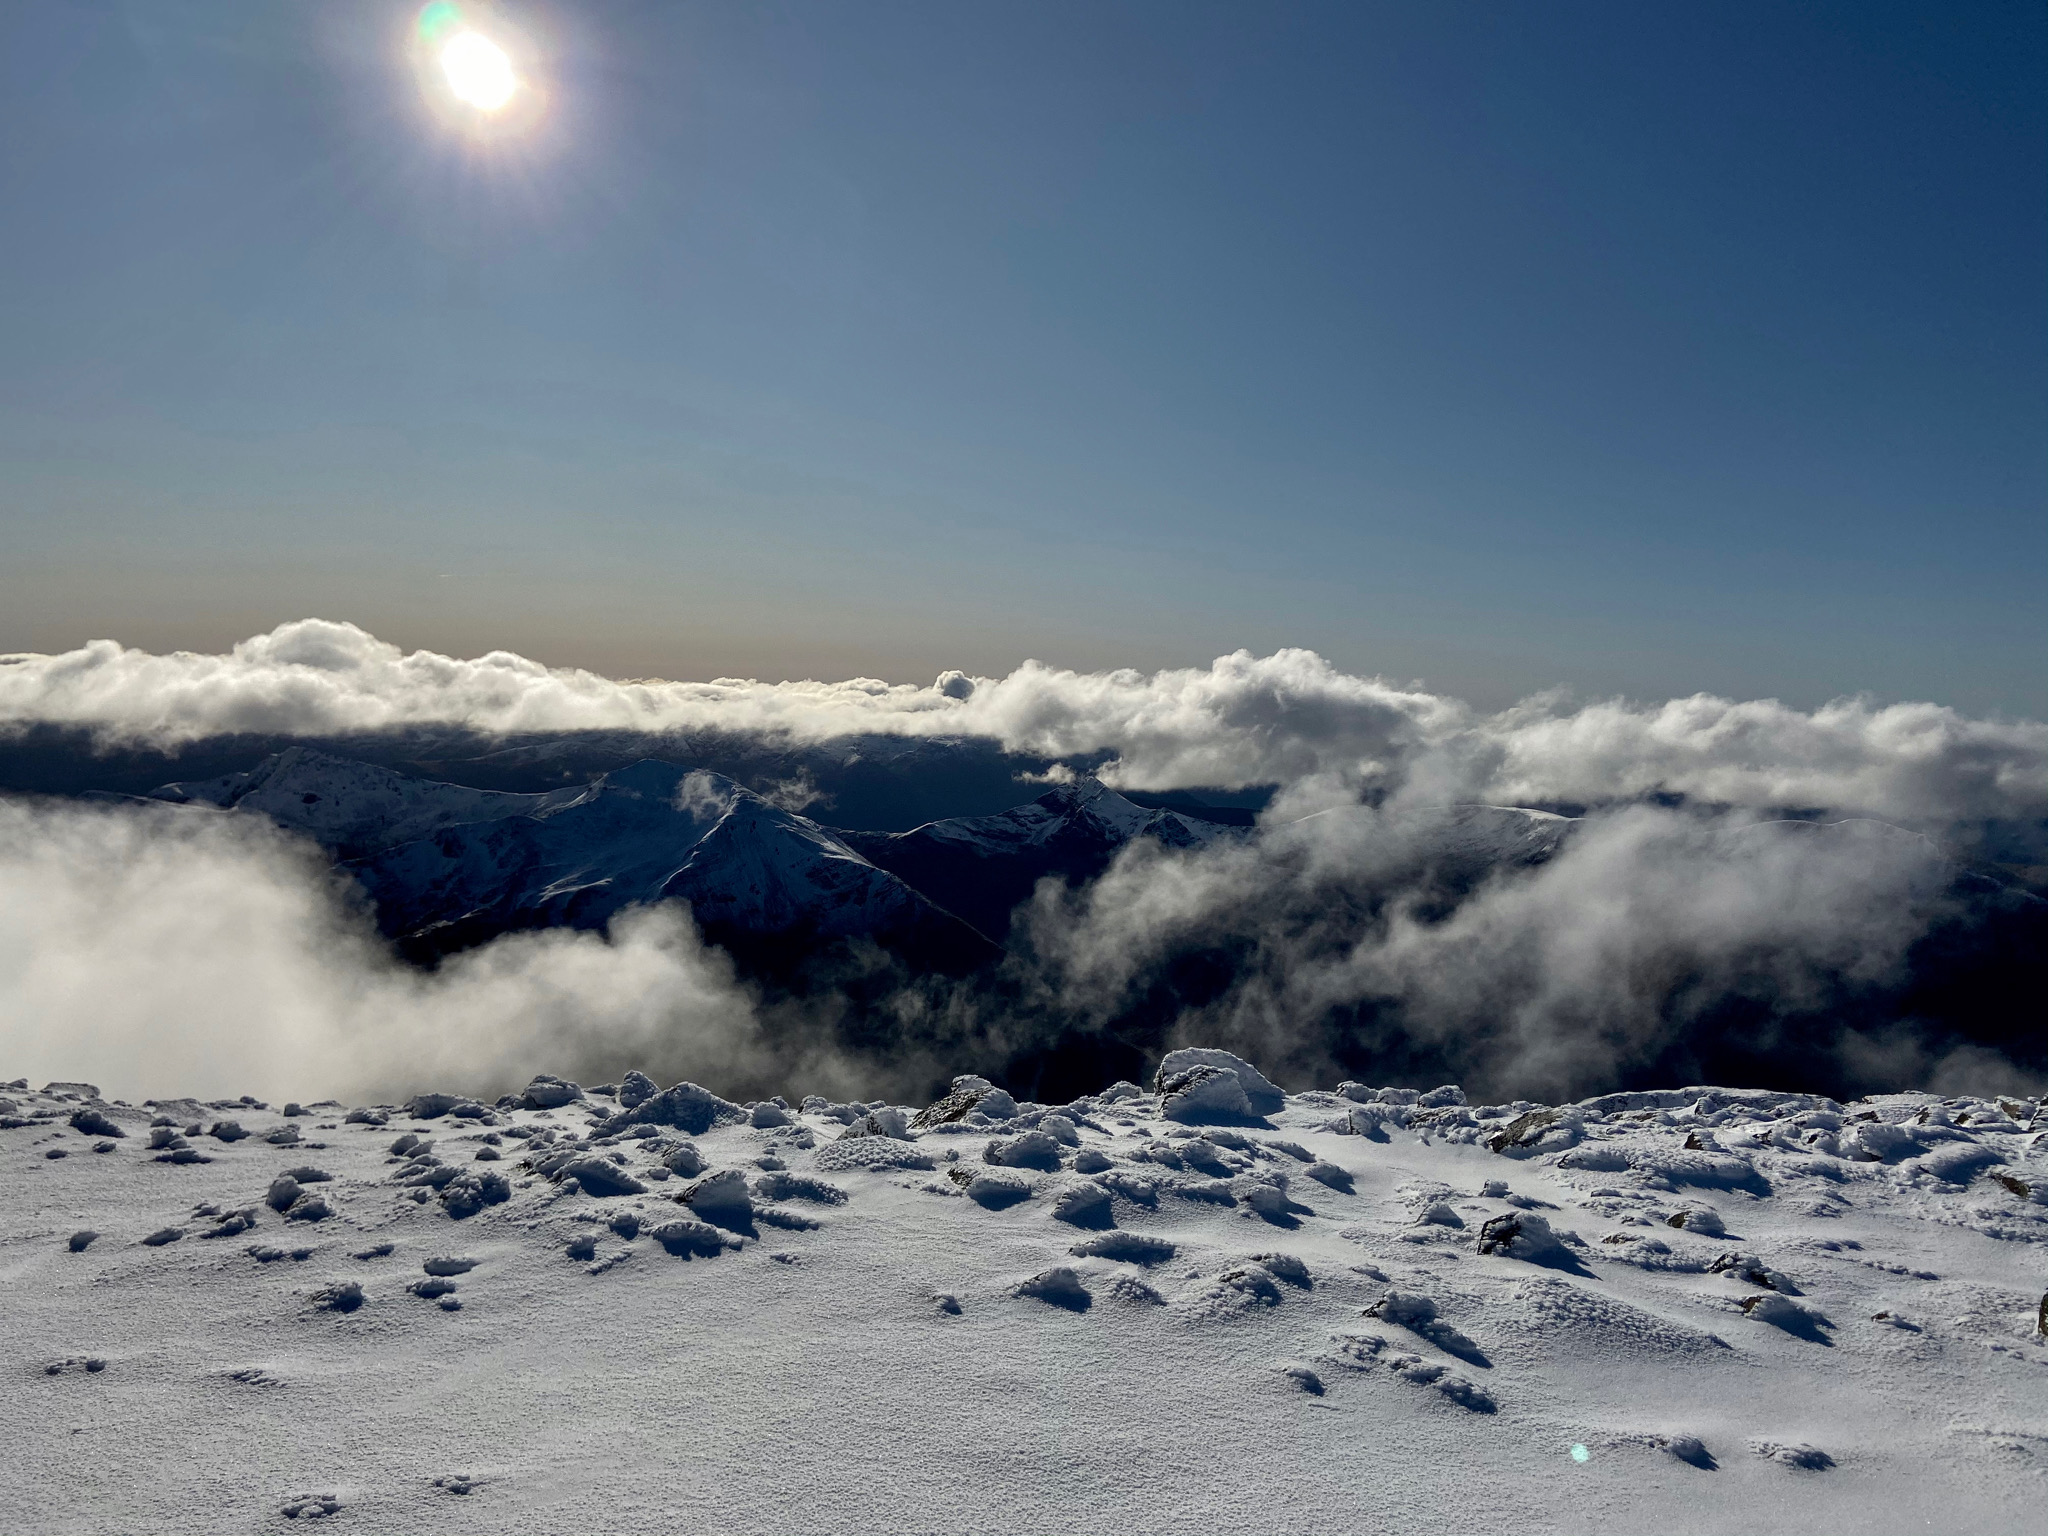 Landscape. 2nd place. Peggy Wagner (AGAIN) 33.Scotland_Summit of Ben Nevis_snowy hike on the tallest mountain in Scotland